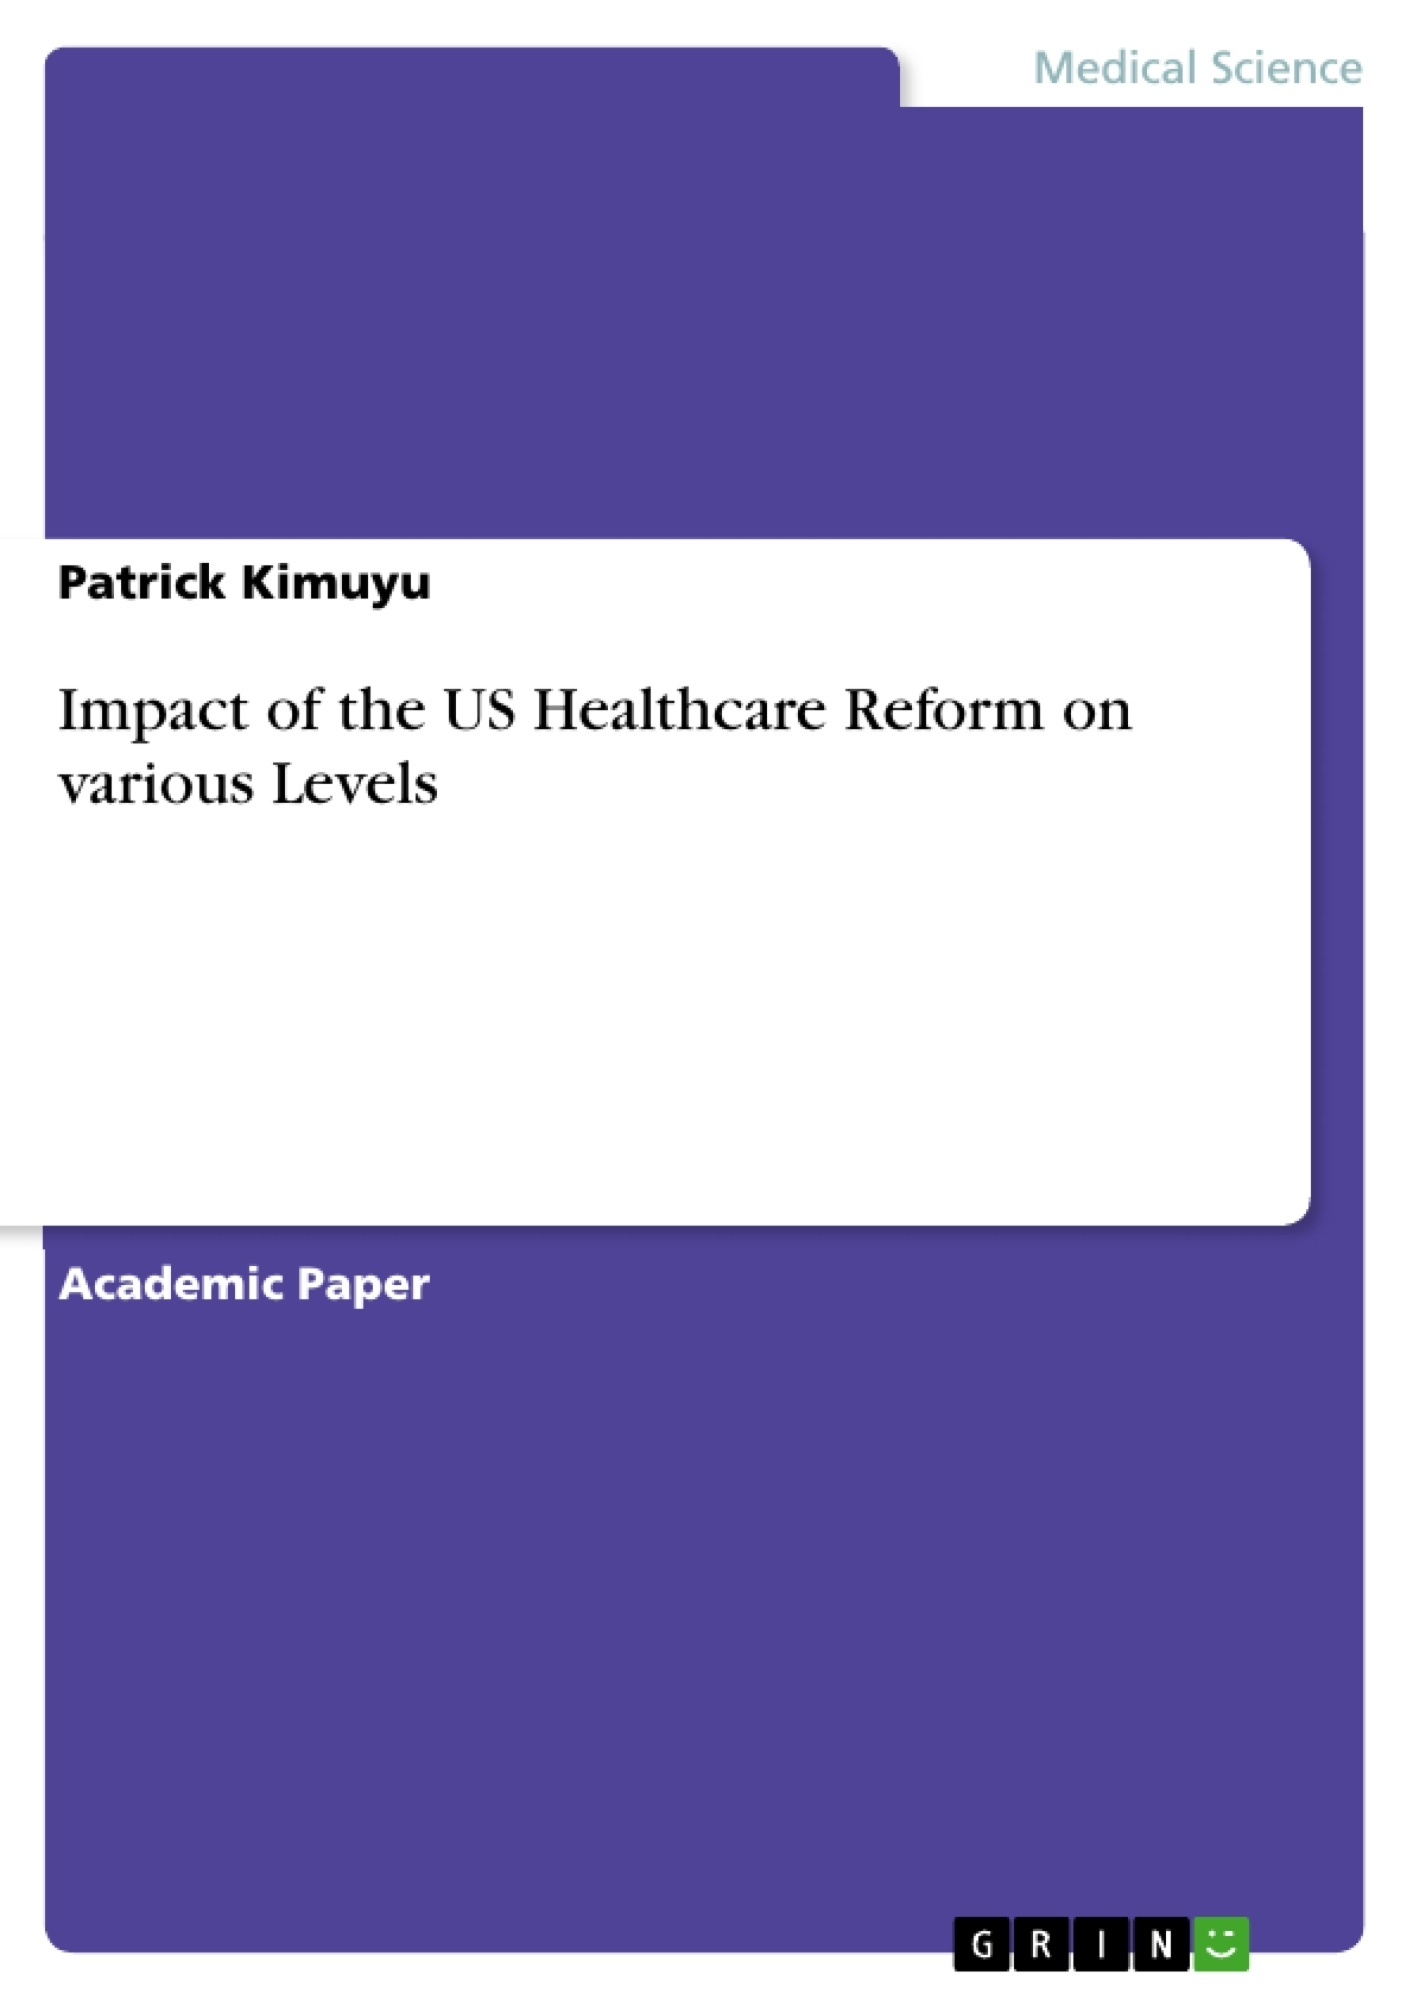 Title: Impact of the US Healthcare Reform on various Levels